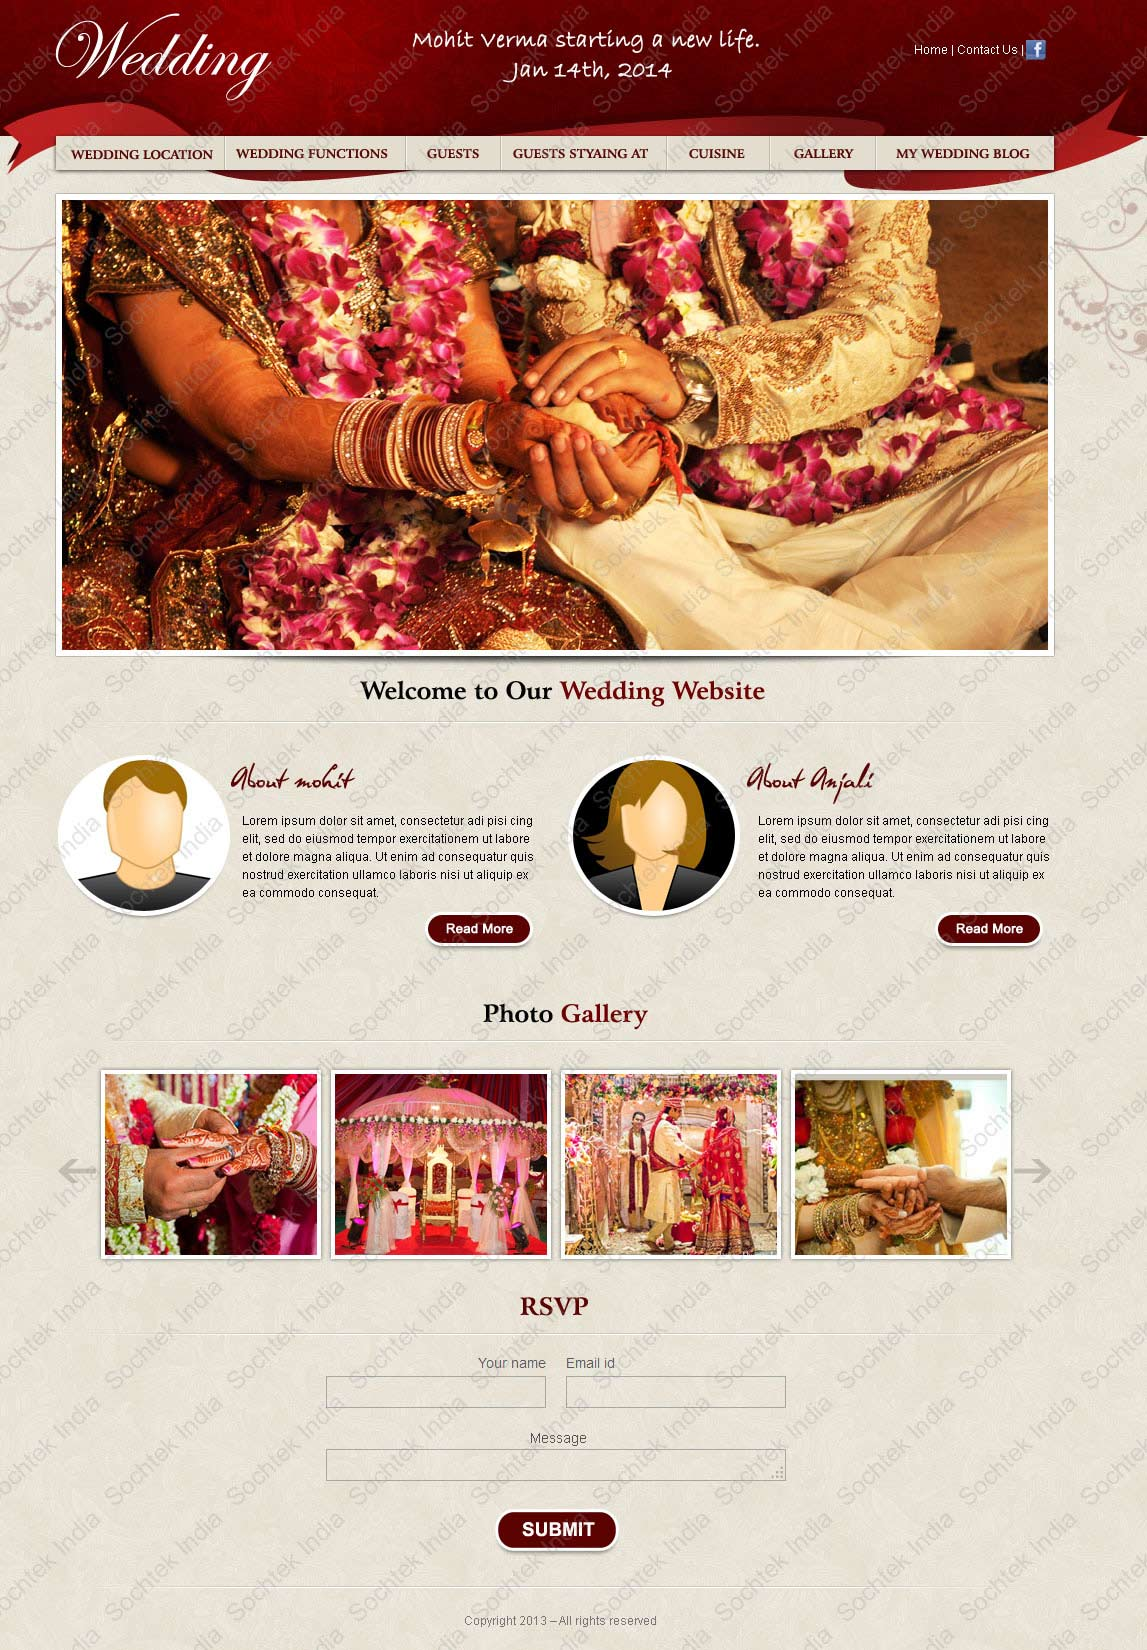 wedding-website-design14